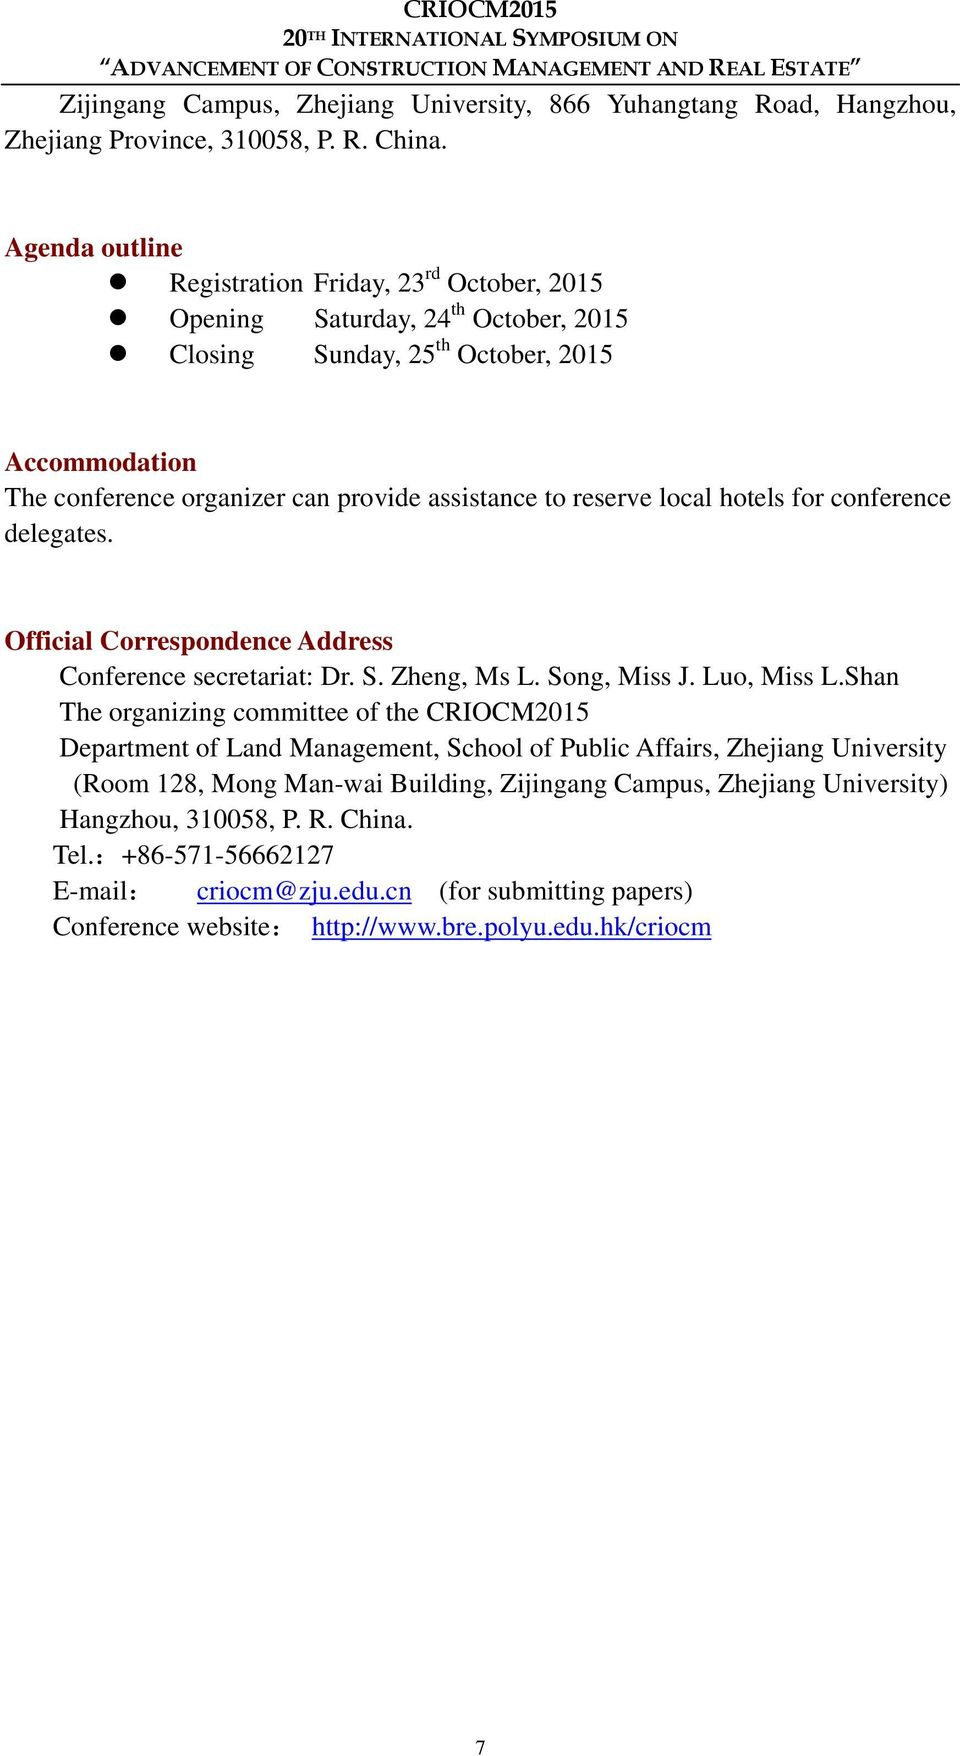 criocm conference information The chinese research institute of construction management (criocm) in collaboration with shenzhen university (szu) proudly invites all academics, researchers and professionals to participate in the criocm 2012, the 17th international symposium on advancement of construction management and real.